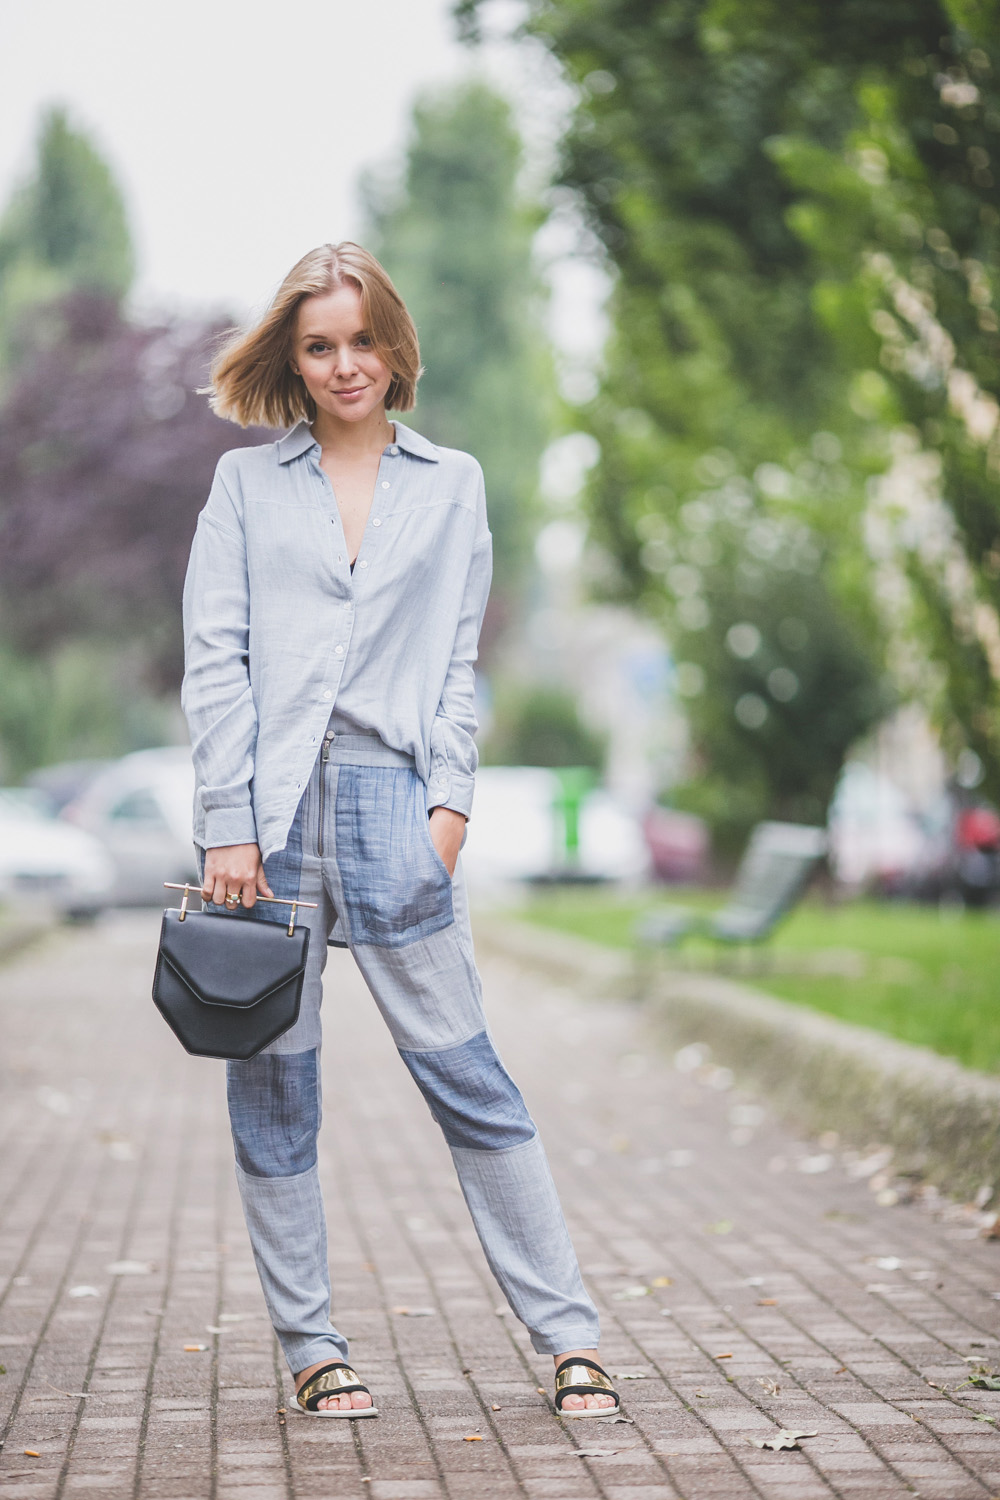 darya kamalova thecablook com russian italian fashion lifestyle blogger in milan for mfw ss15 wearing gat rimon pijamas suit zara flats m2malletier bag on iceberg fashion show-5383